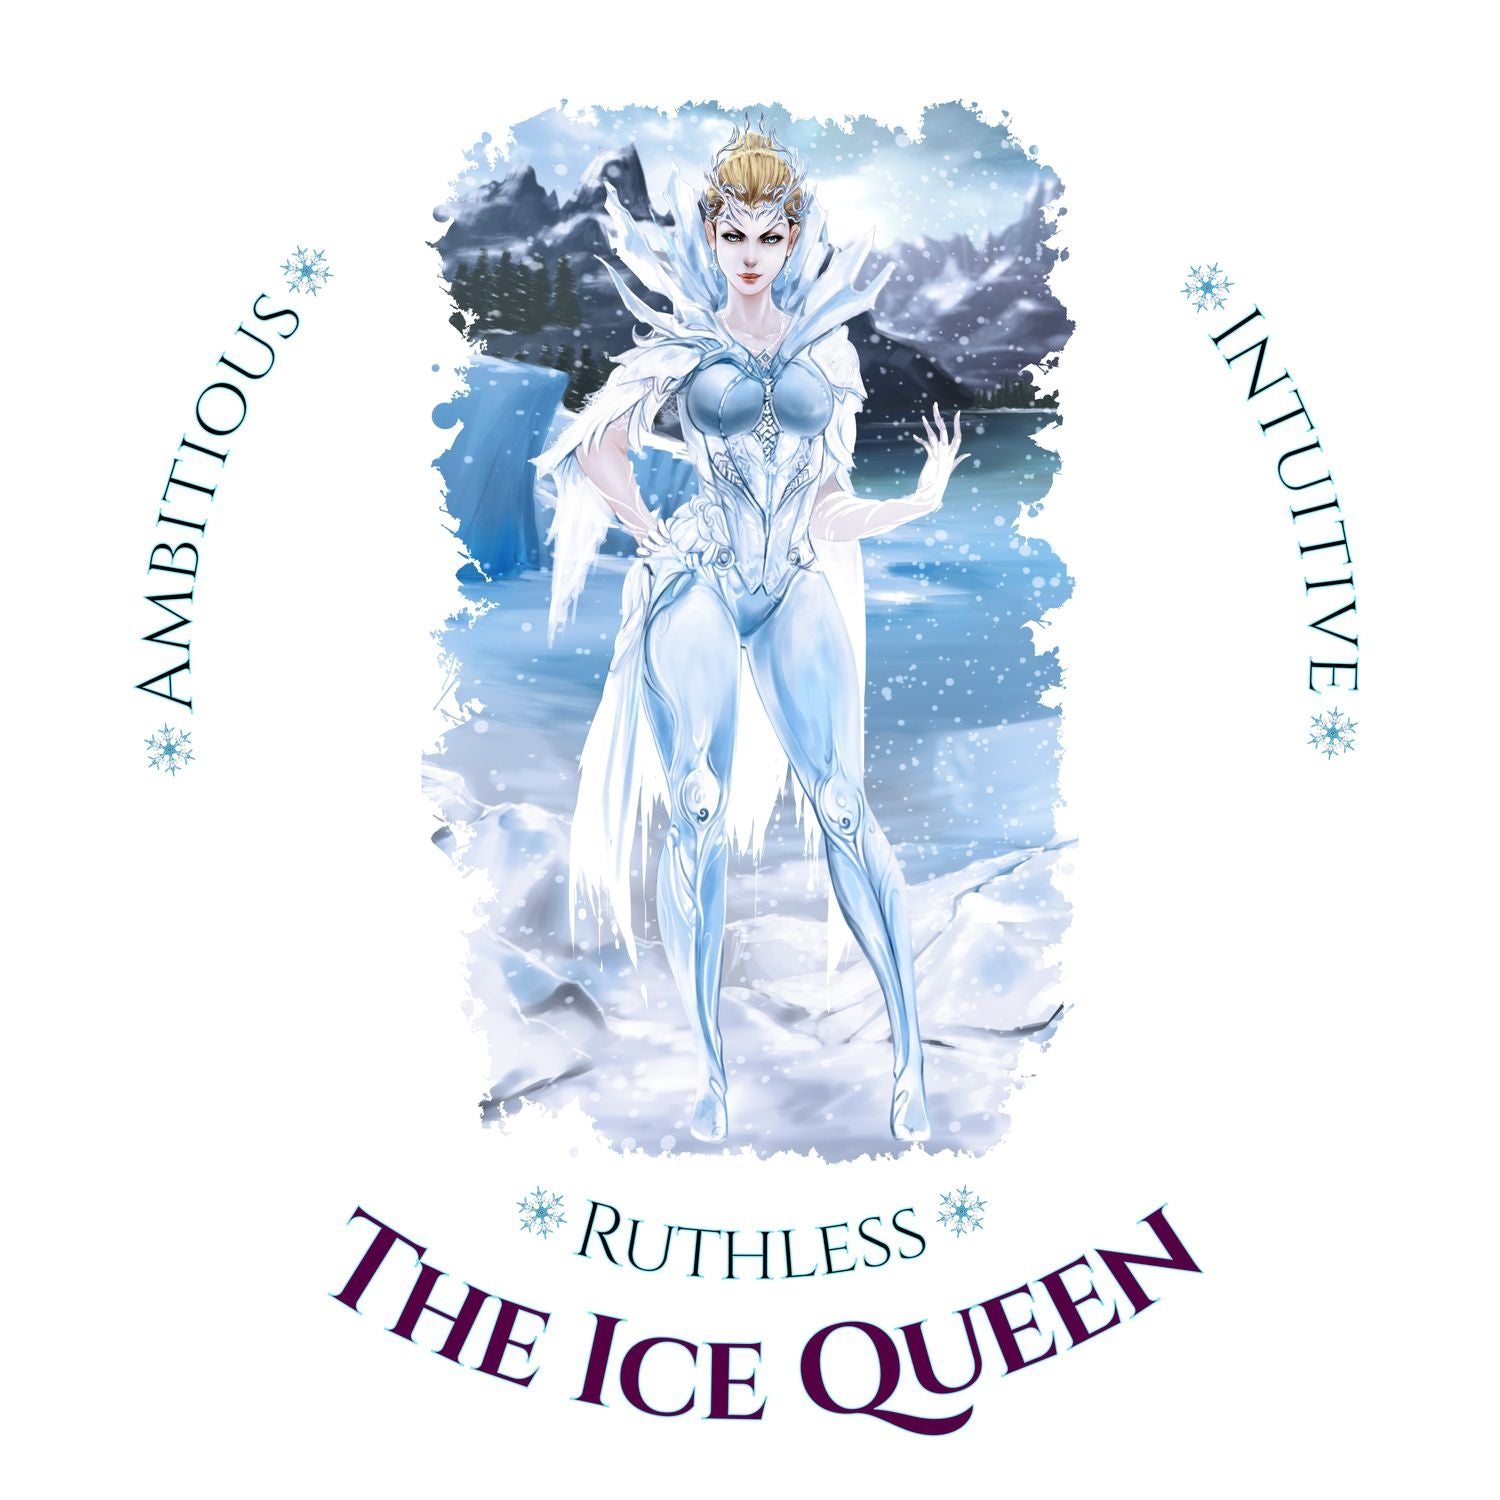 Naturally Wicked Ice Queen Surrounded By Ice & Text - Ambitious, Intuitive & Ruthless